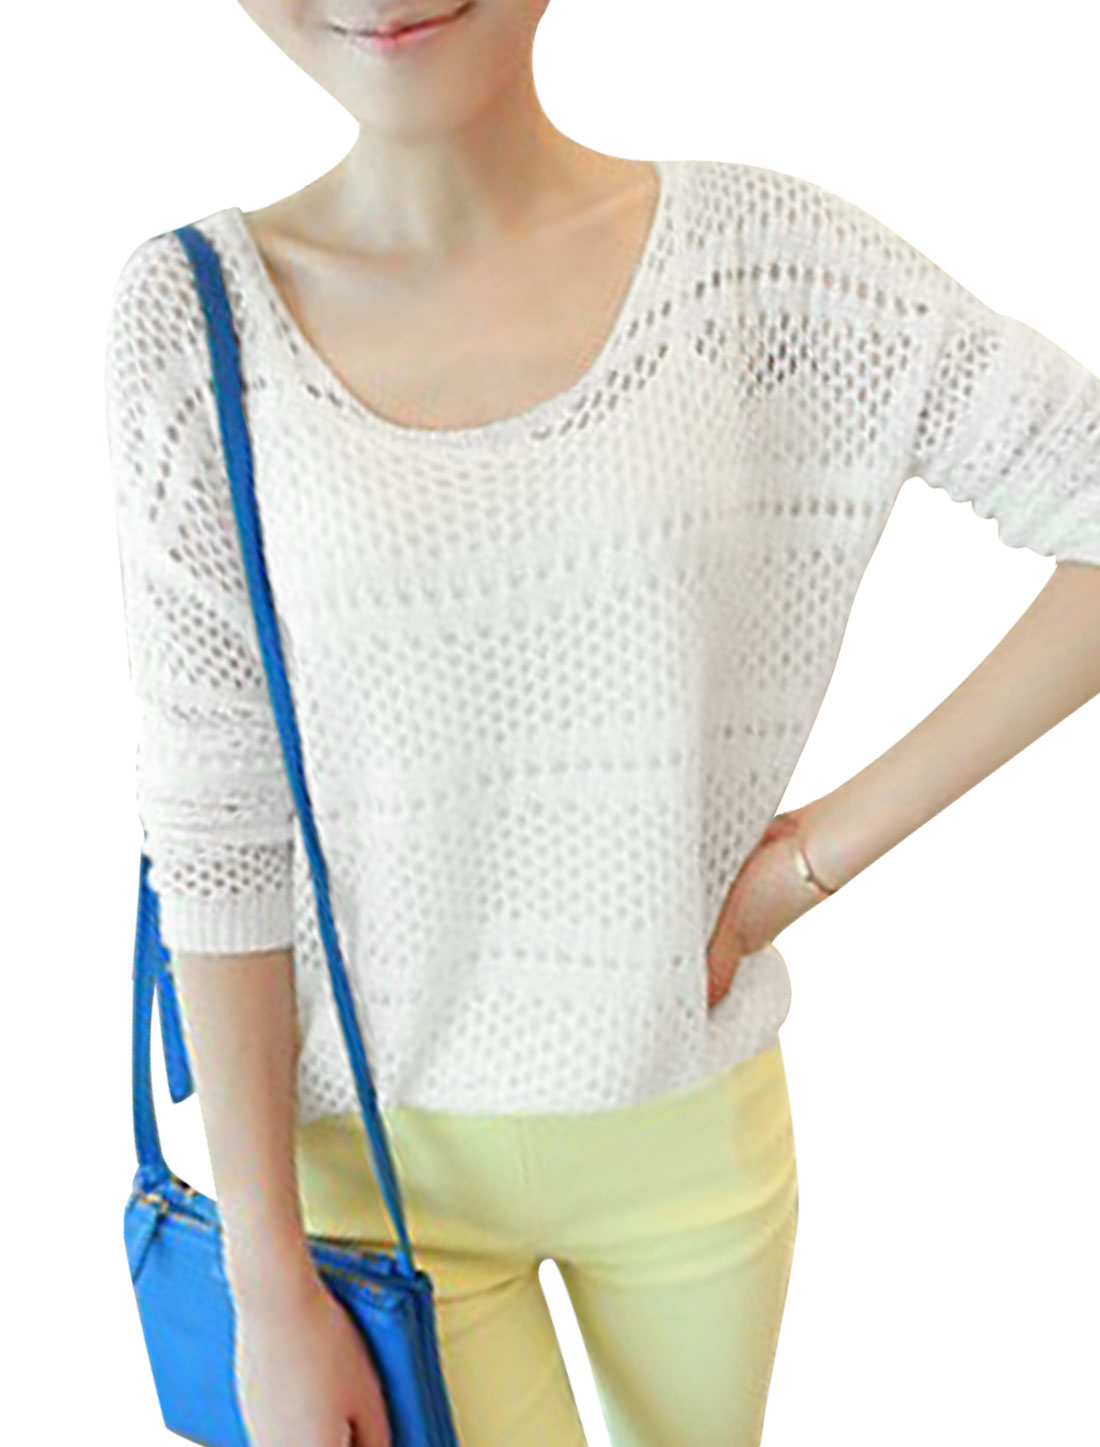 Lady Hollow Out Design Fashionable Casual Knit Top White S